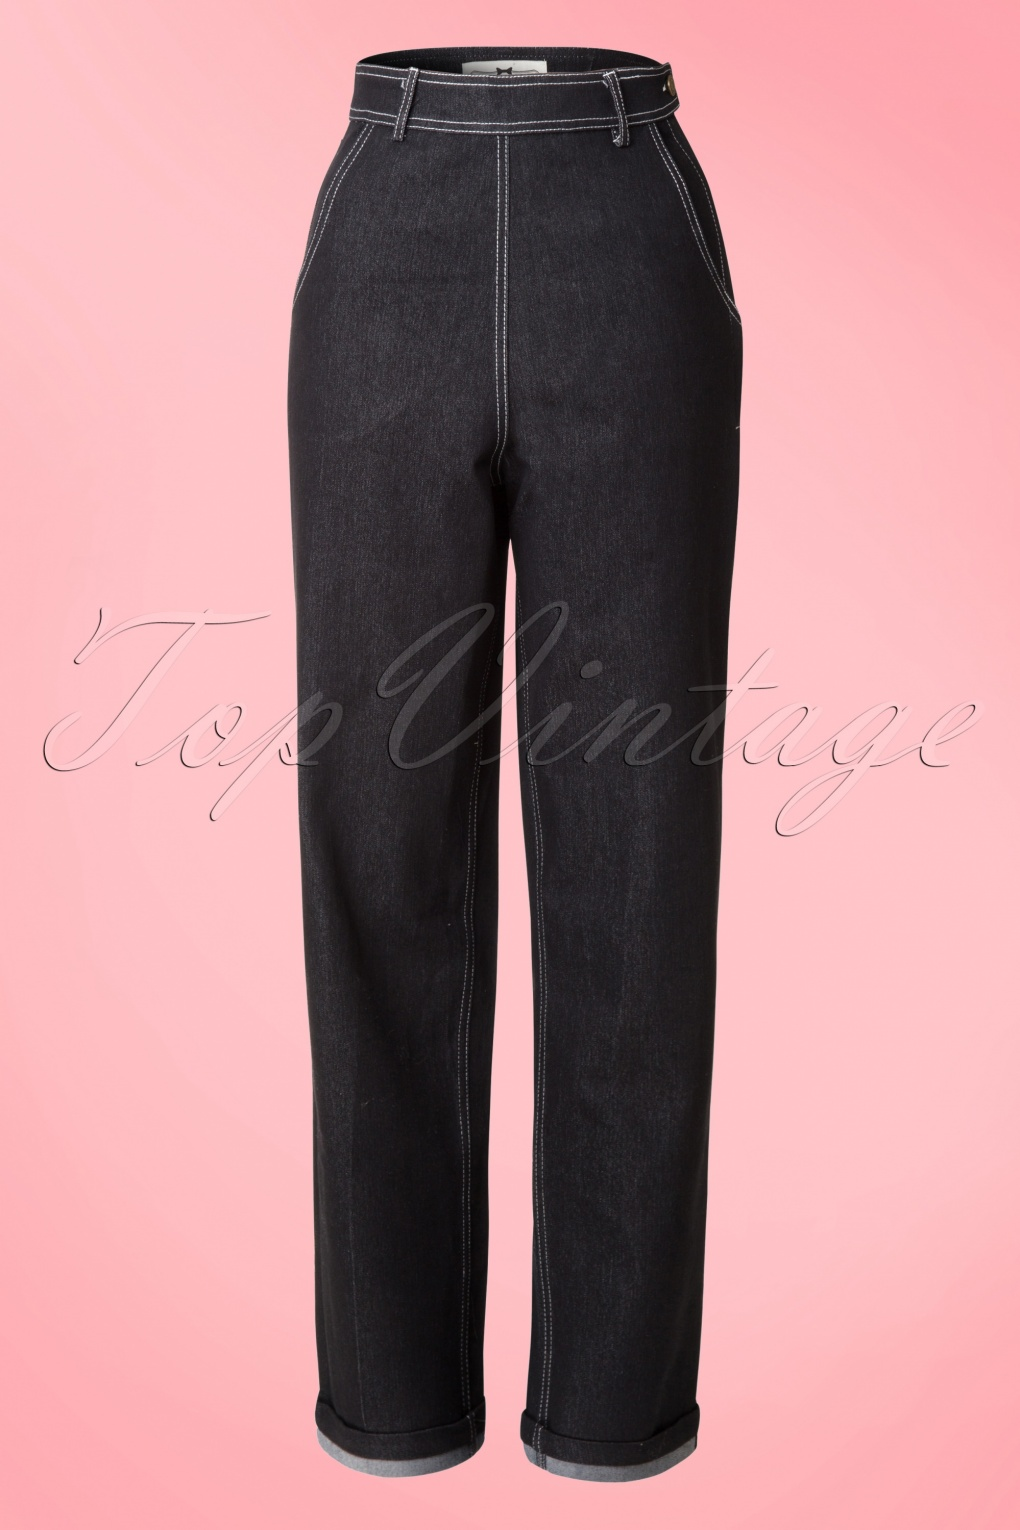 1950s Pants History for Women 50s Siobhan High Waist Jeans in Black £47.73 AT vintagedancer.com